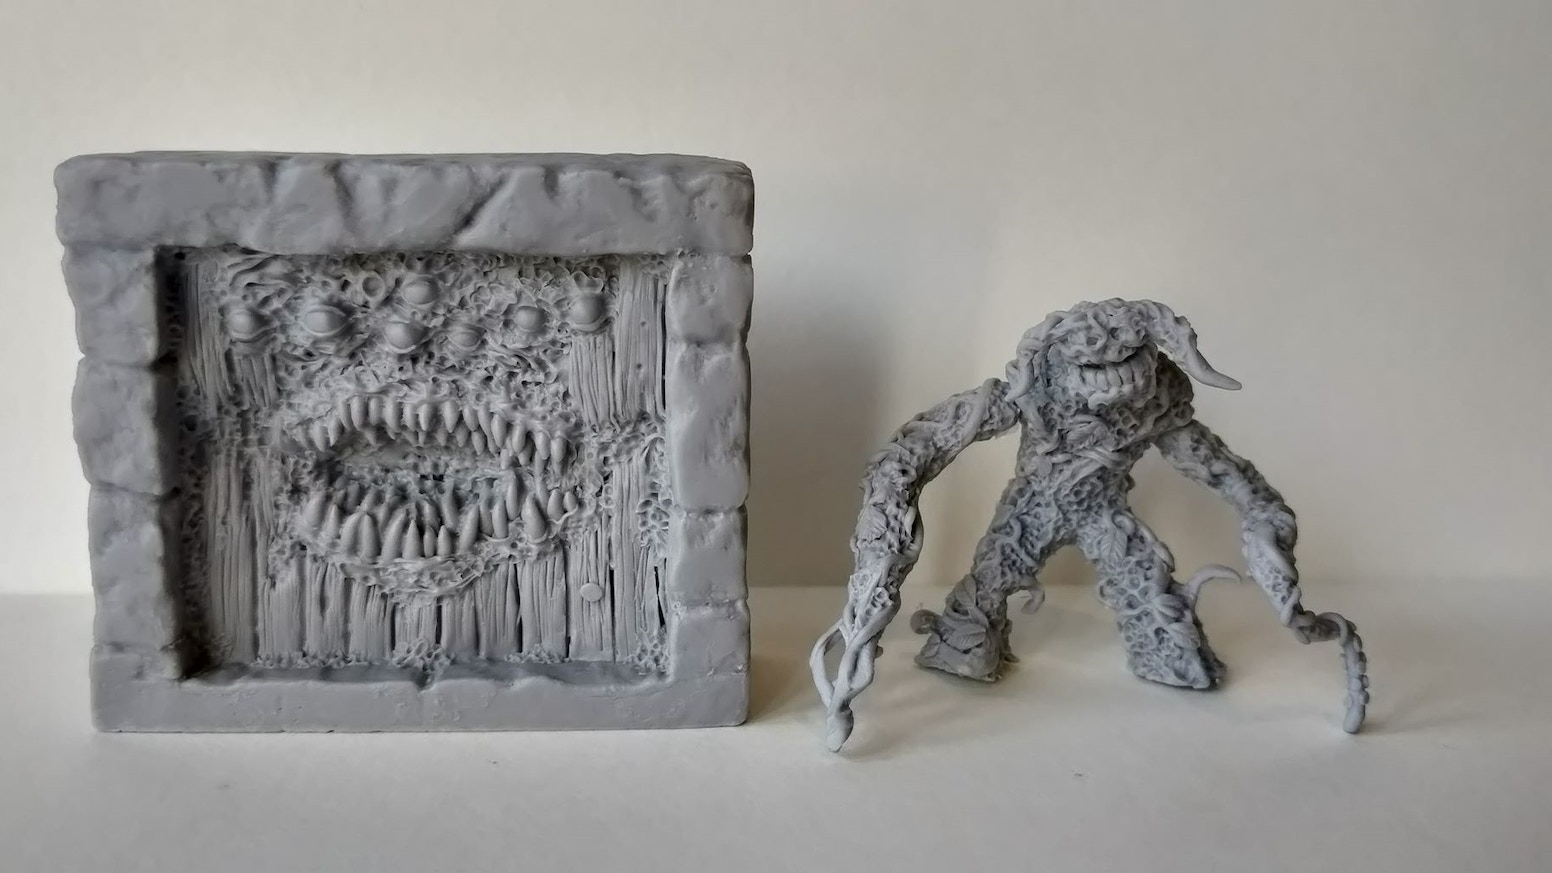 Monthly Monster - Forest Shambler & Demon Door 28mm Minis by